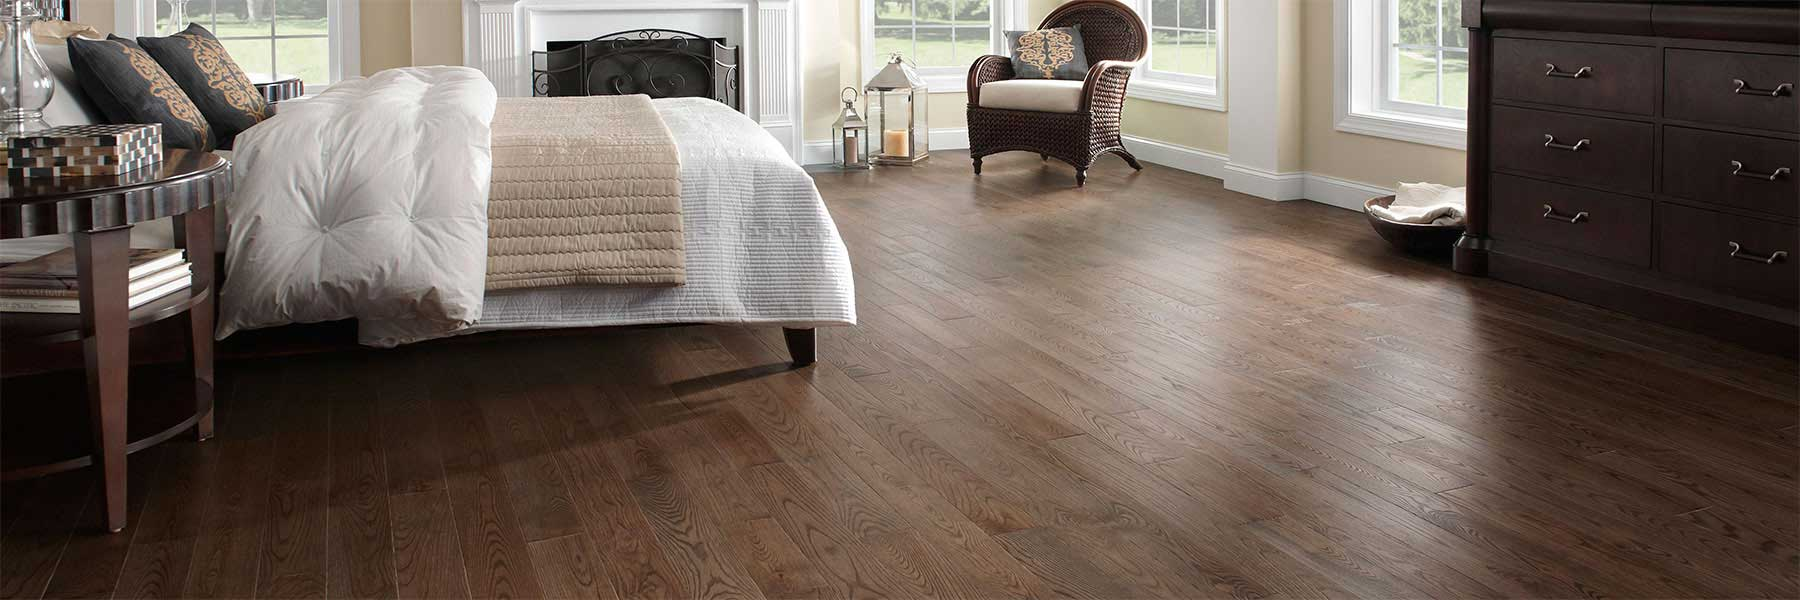 trafficmaster resilient case luxury wood grip sq african v allure in res plank vinyl dark floor flooring itm x strip ft